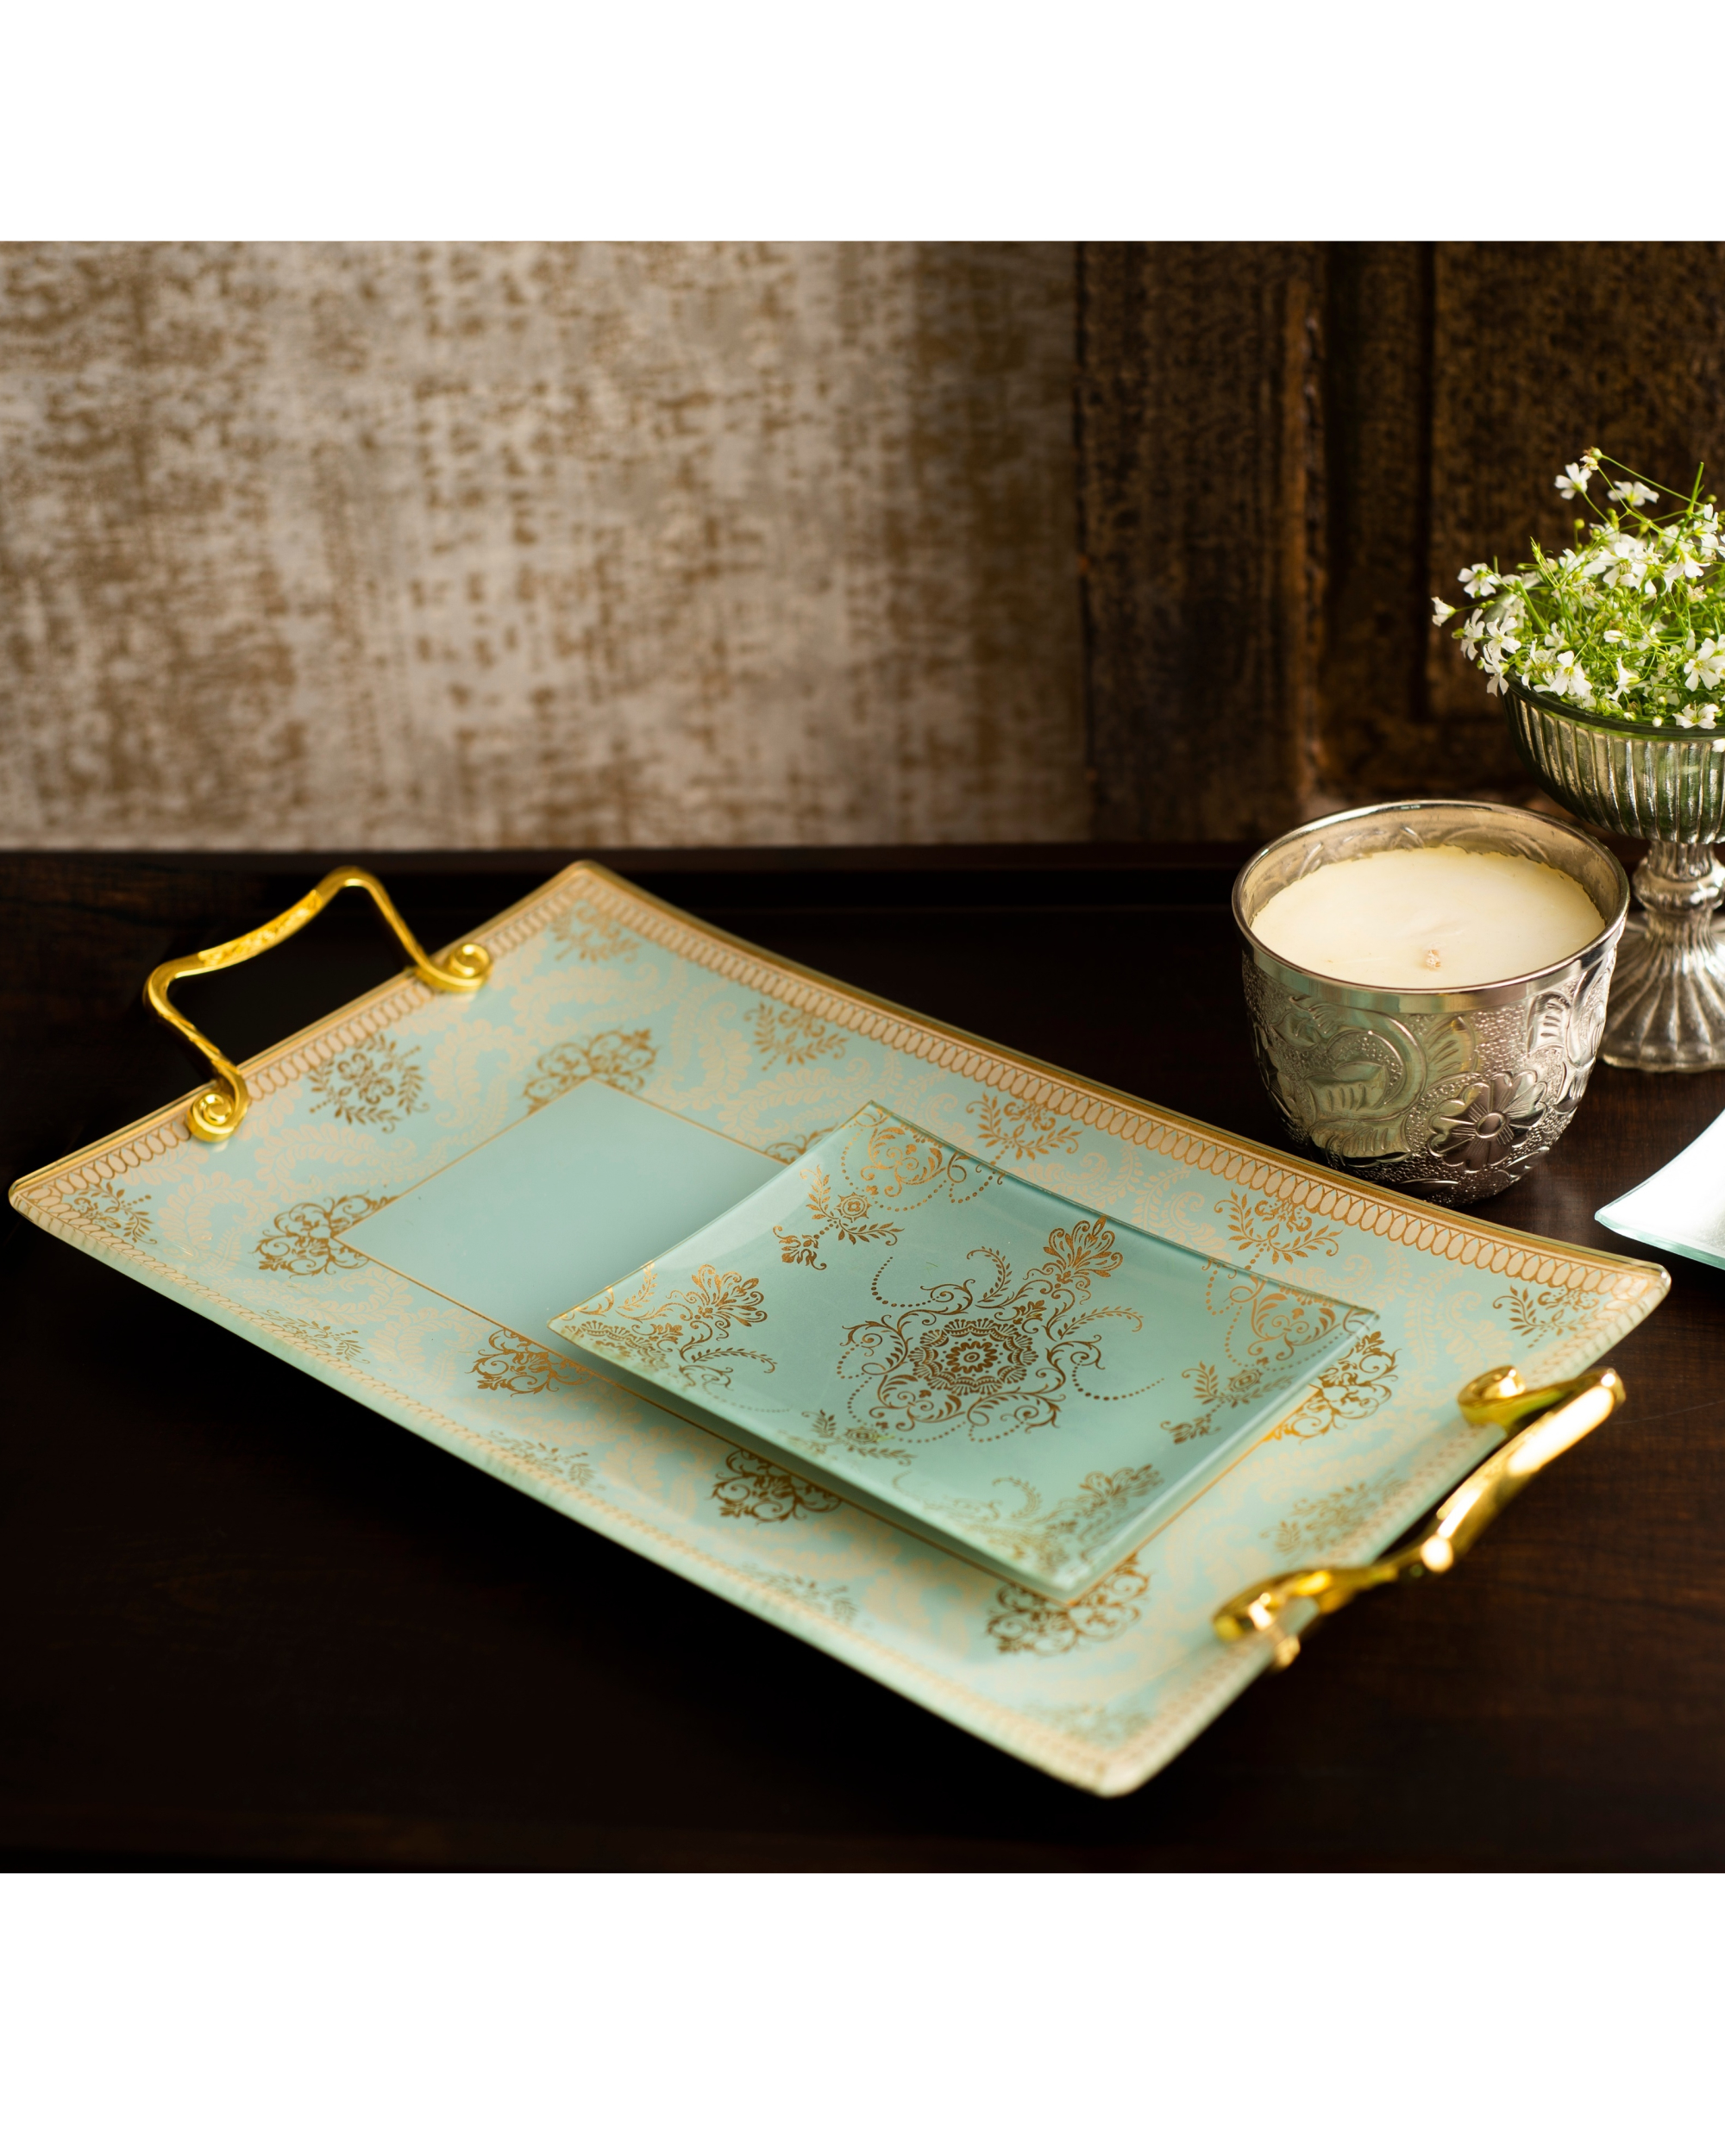 Green glass rectangle tray with gold foil work and Metal Alloy Handles